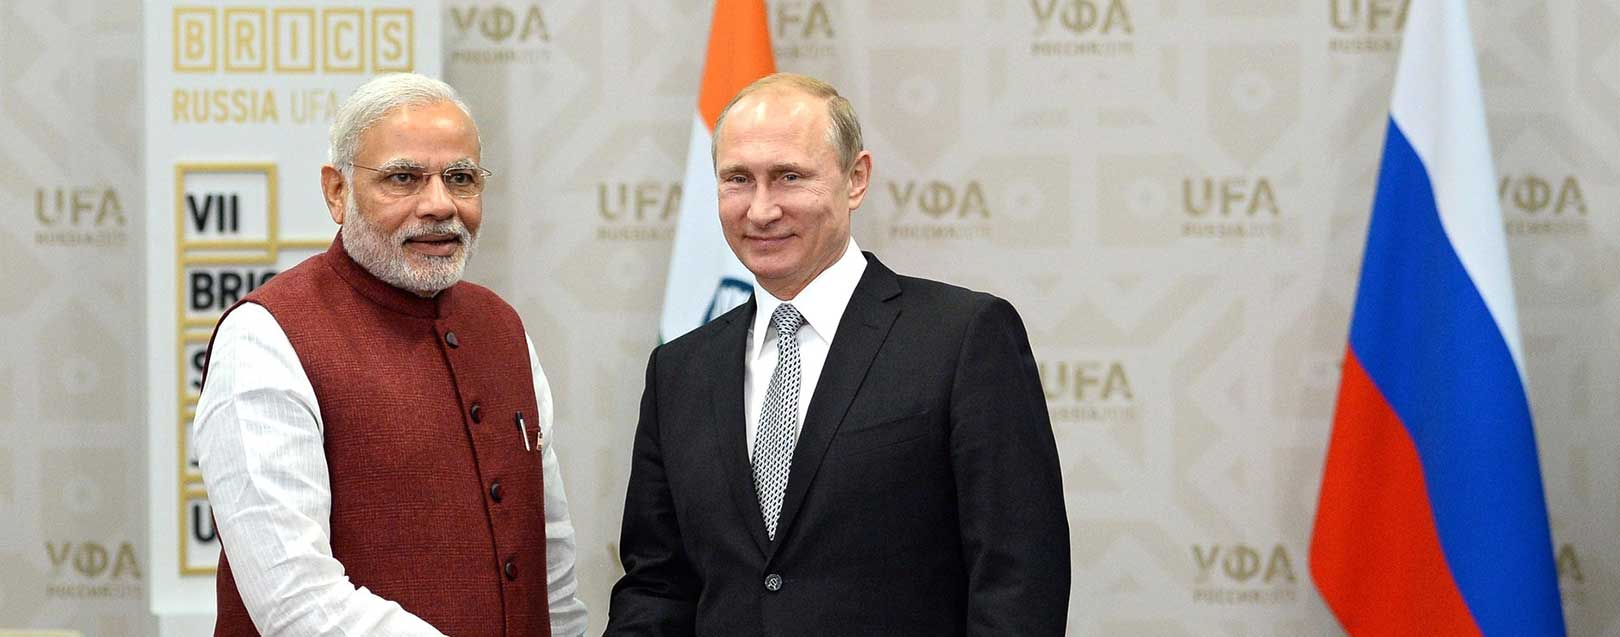 Modi to meet Putin on Thursday to patch up Indo-Russian ties